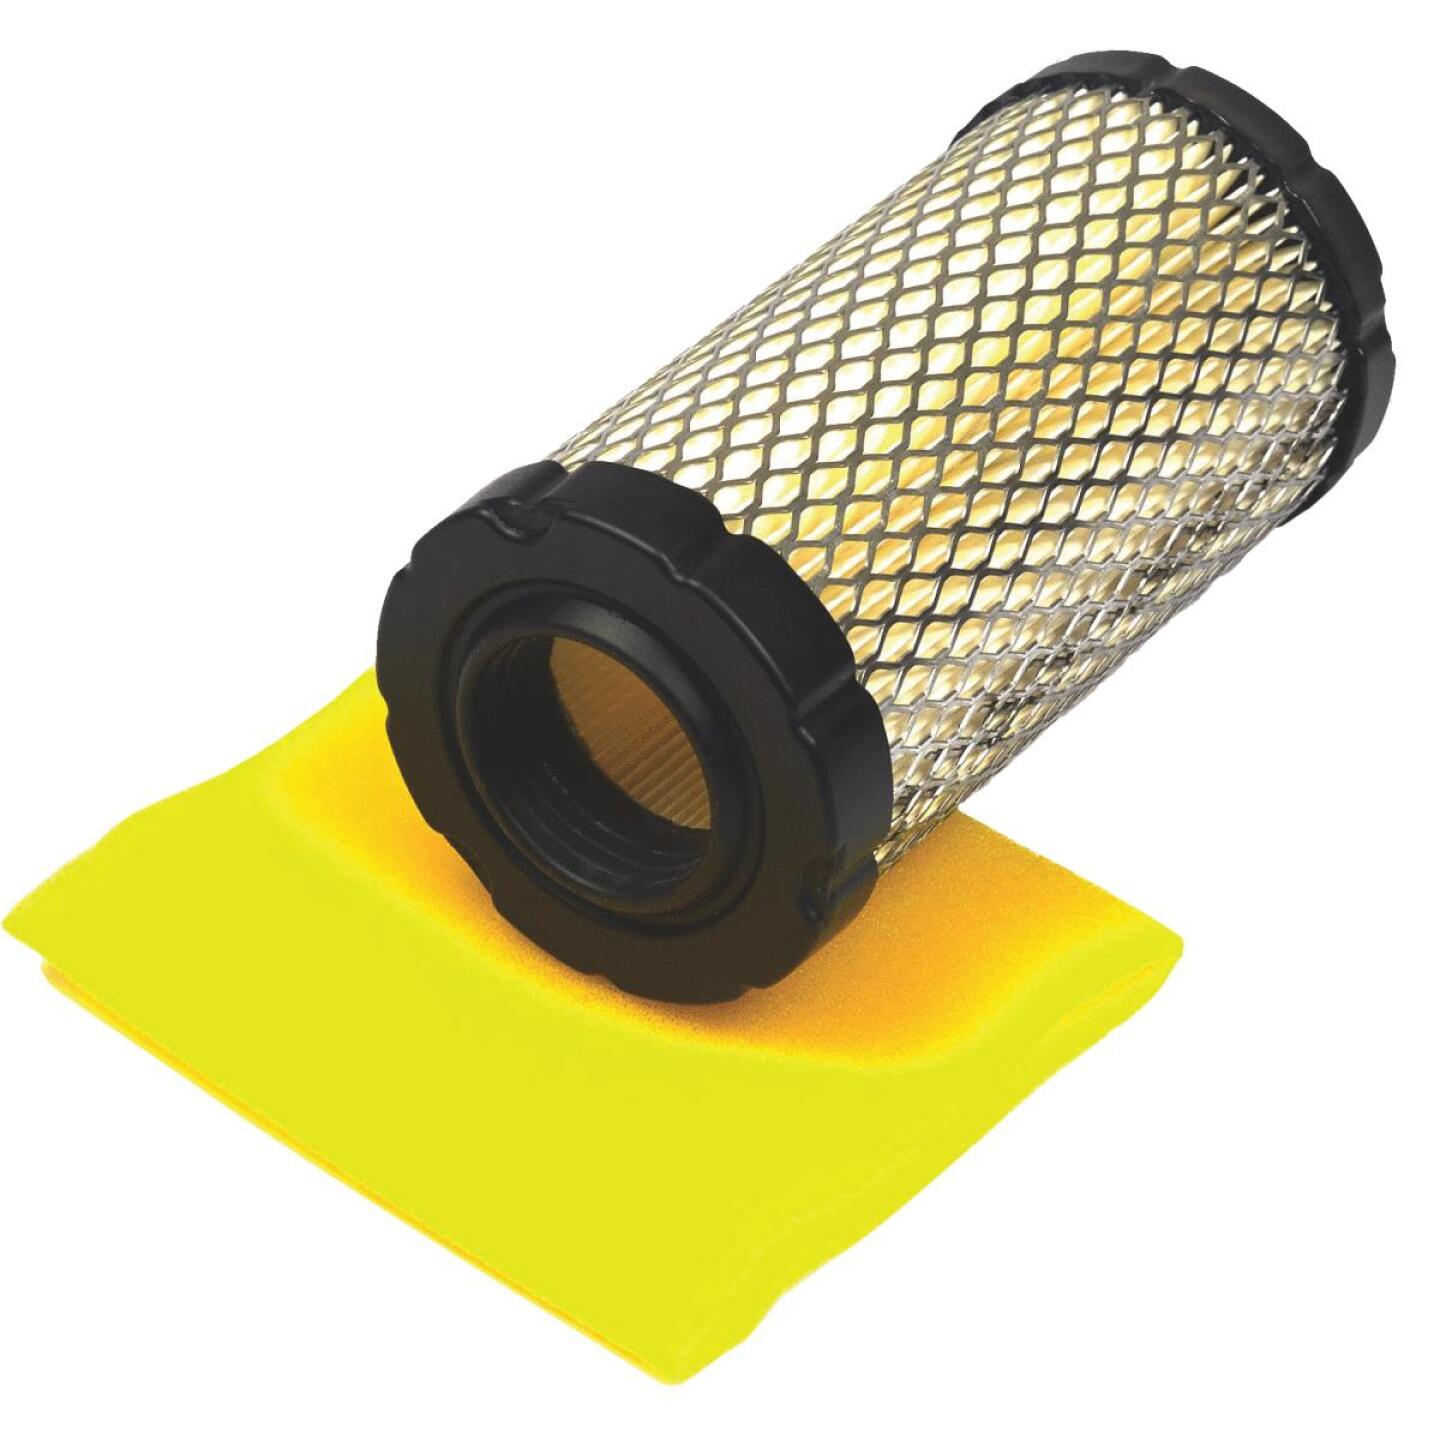 Briggs & Stratton 20 To 21 HP Air Filter Cartridge w/Pre-Cleaner Image 1